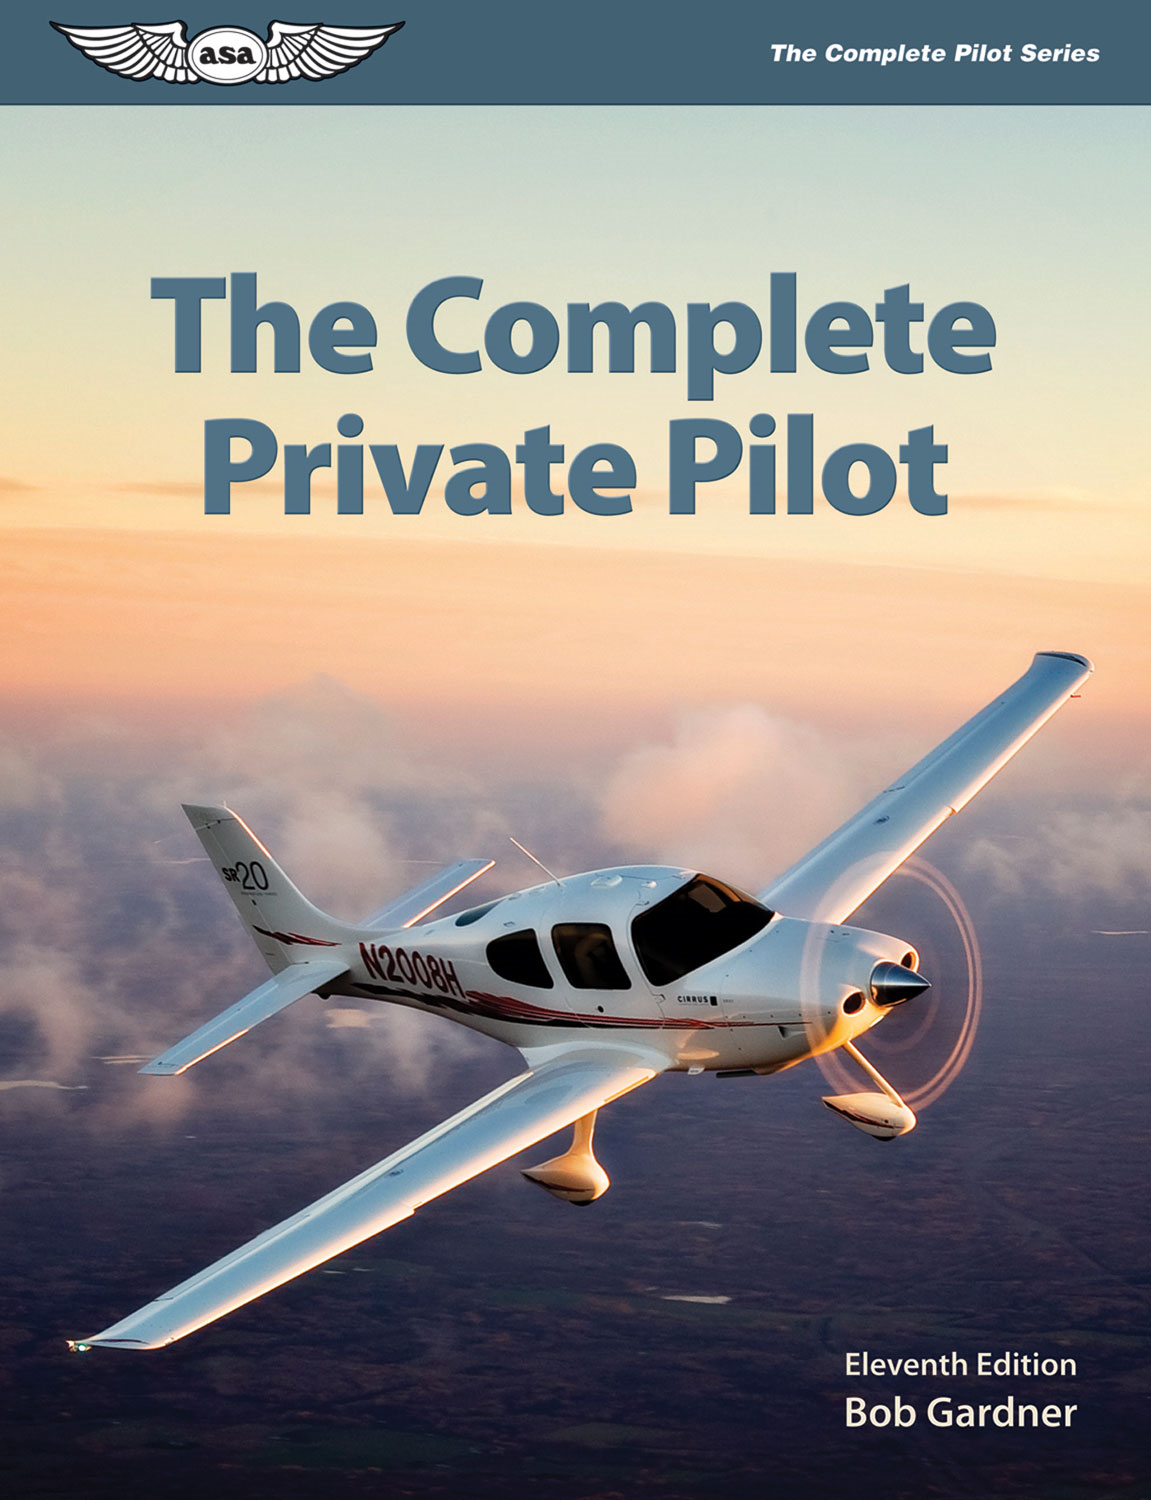 The Complete Private Pilot